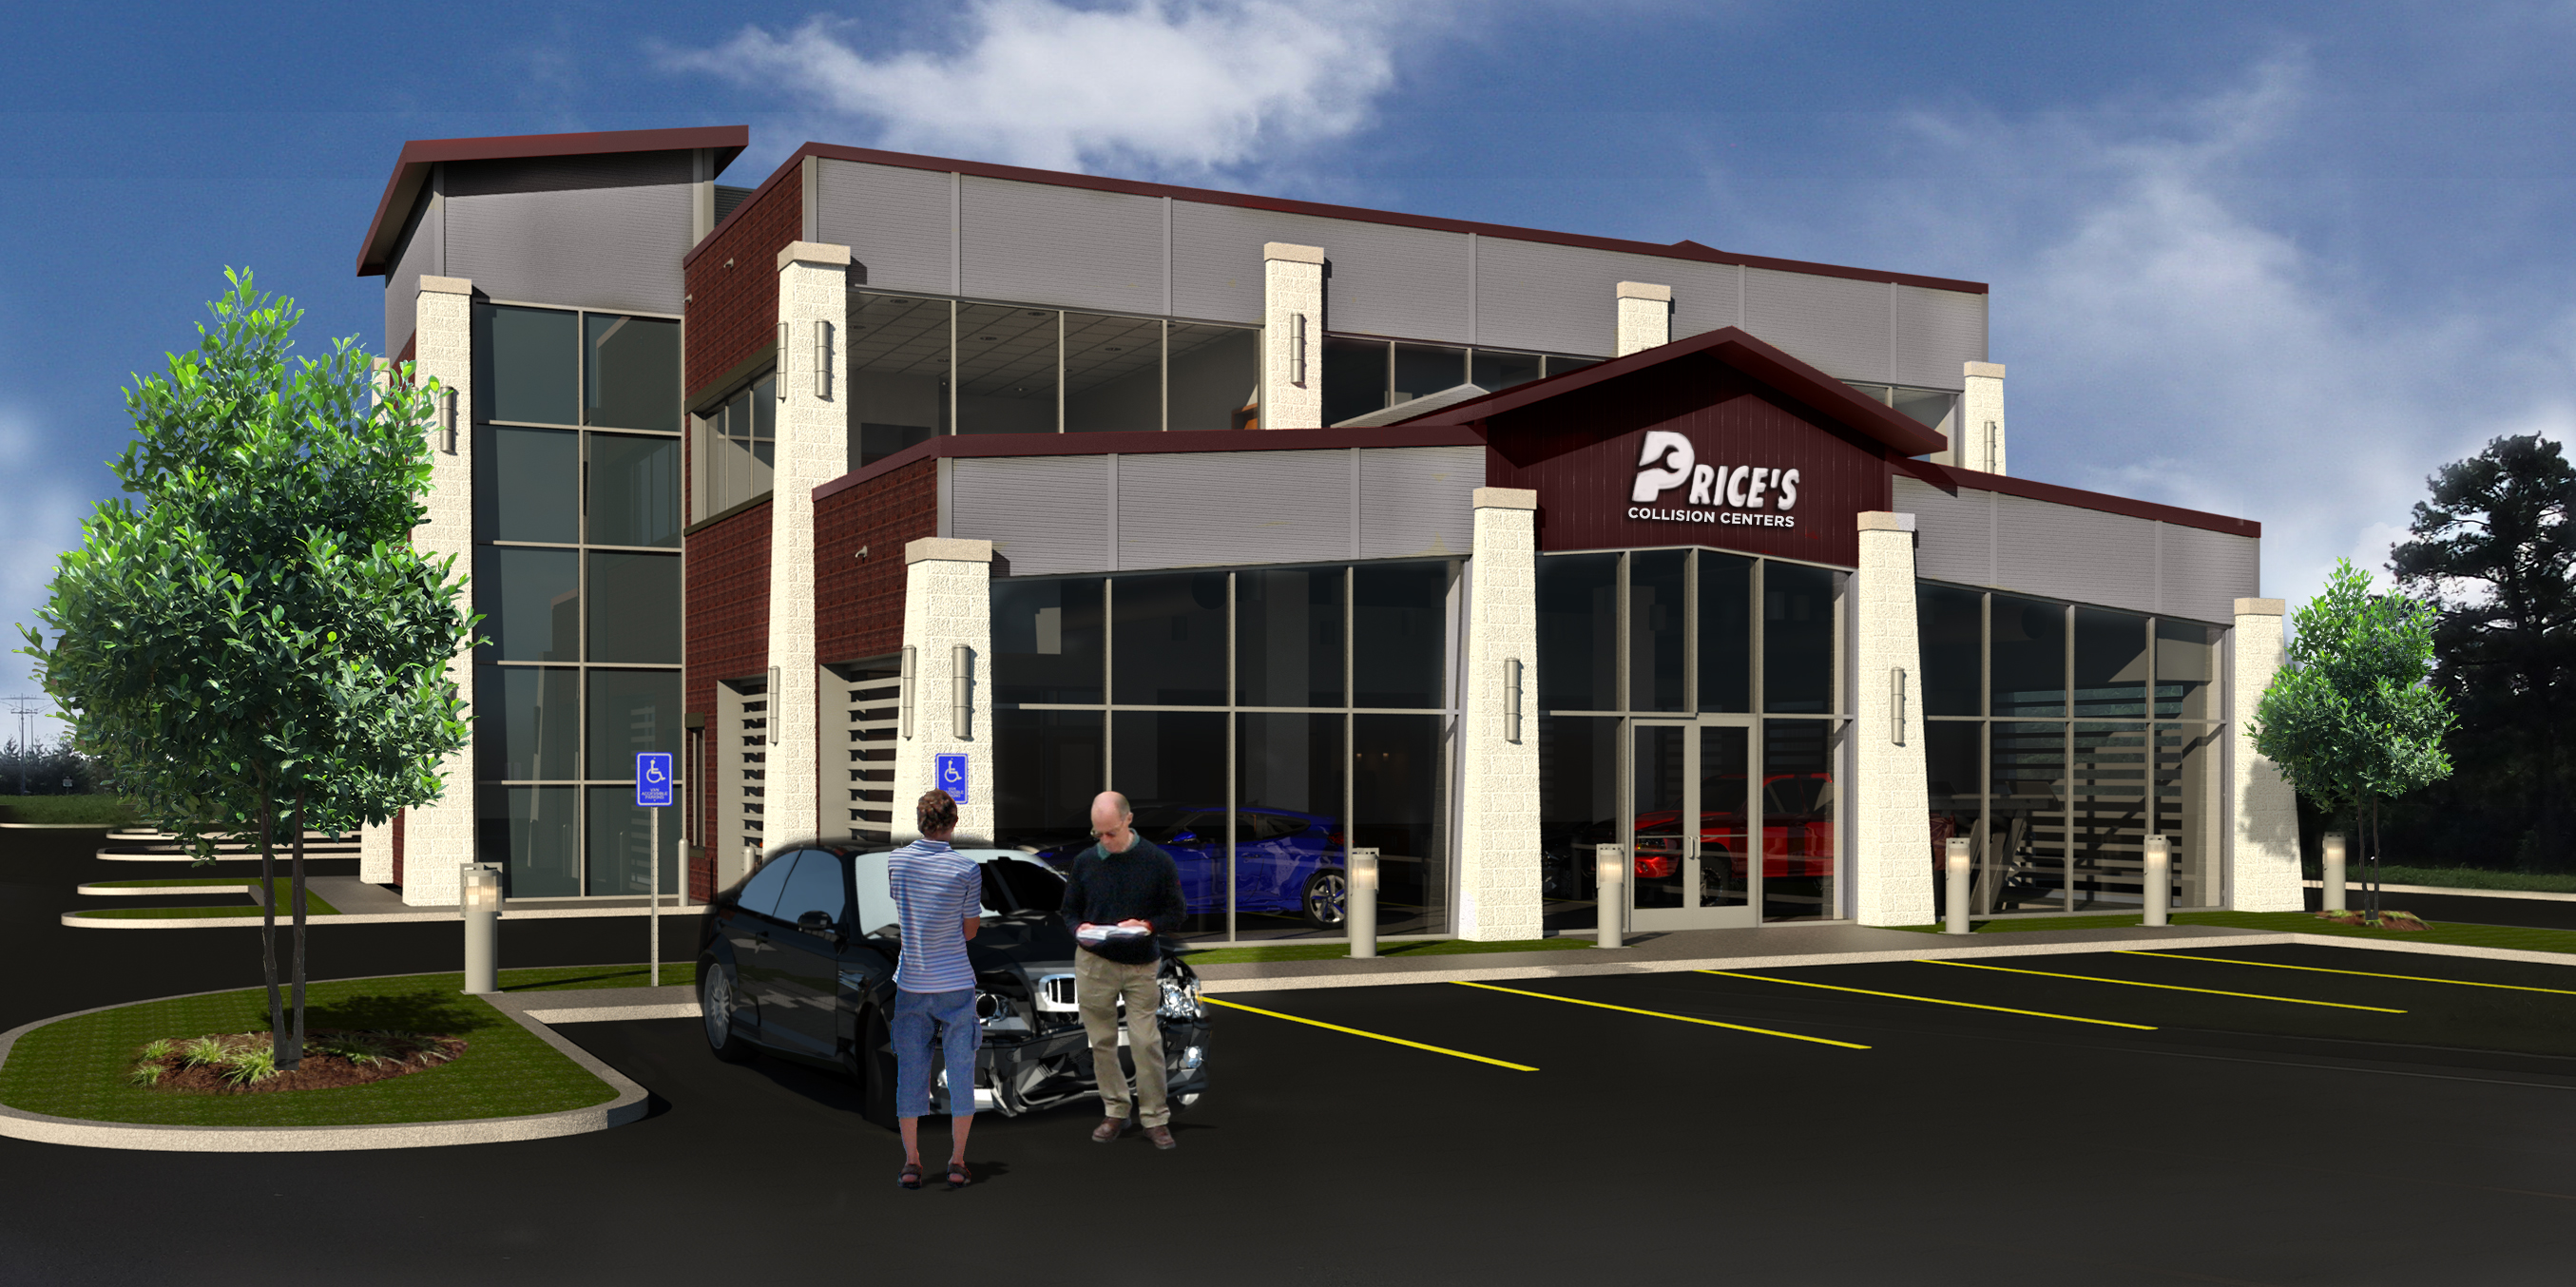 Prices Collision Center Rendering 09-16-15